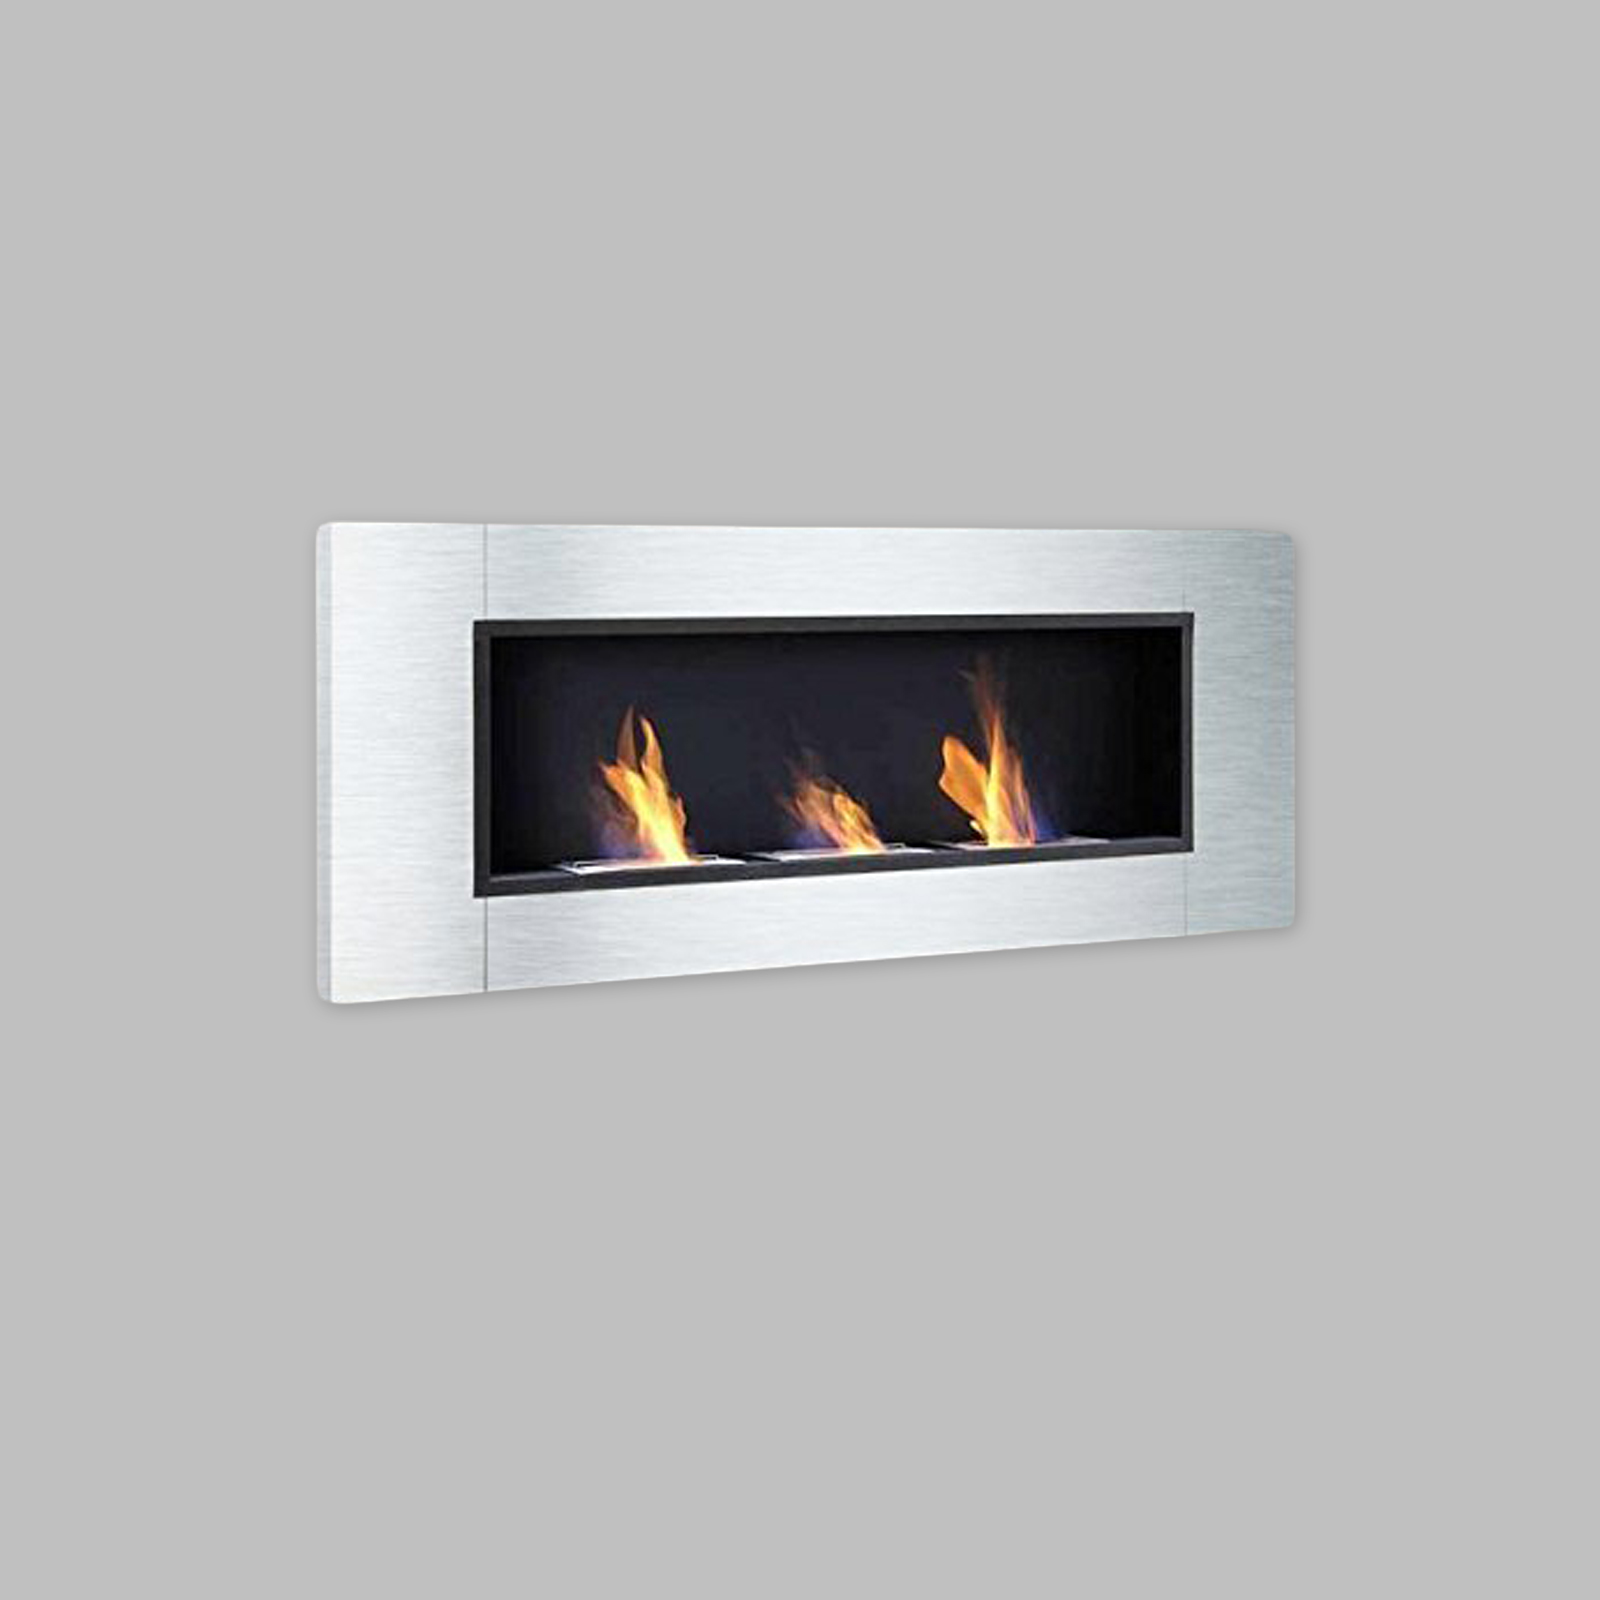 Luxury Stainless Steel Bio Ethanol Fireplace Gelkamin Gel